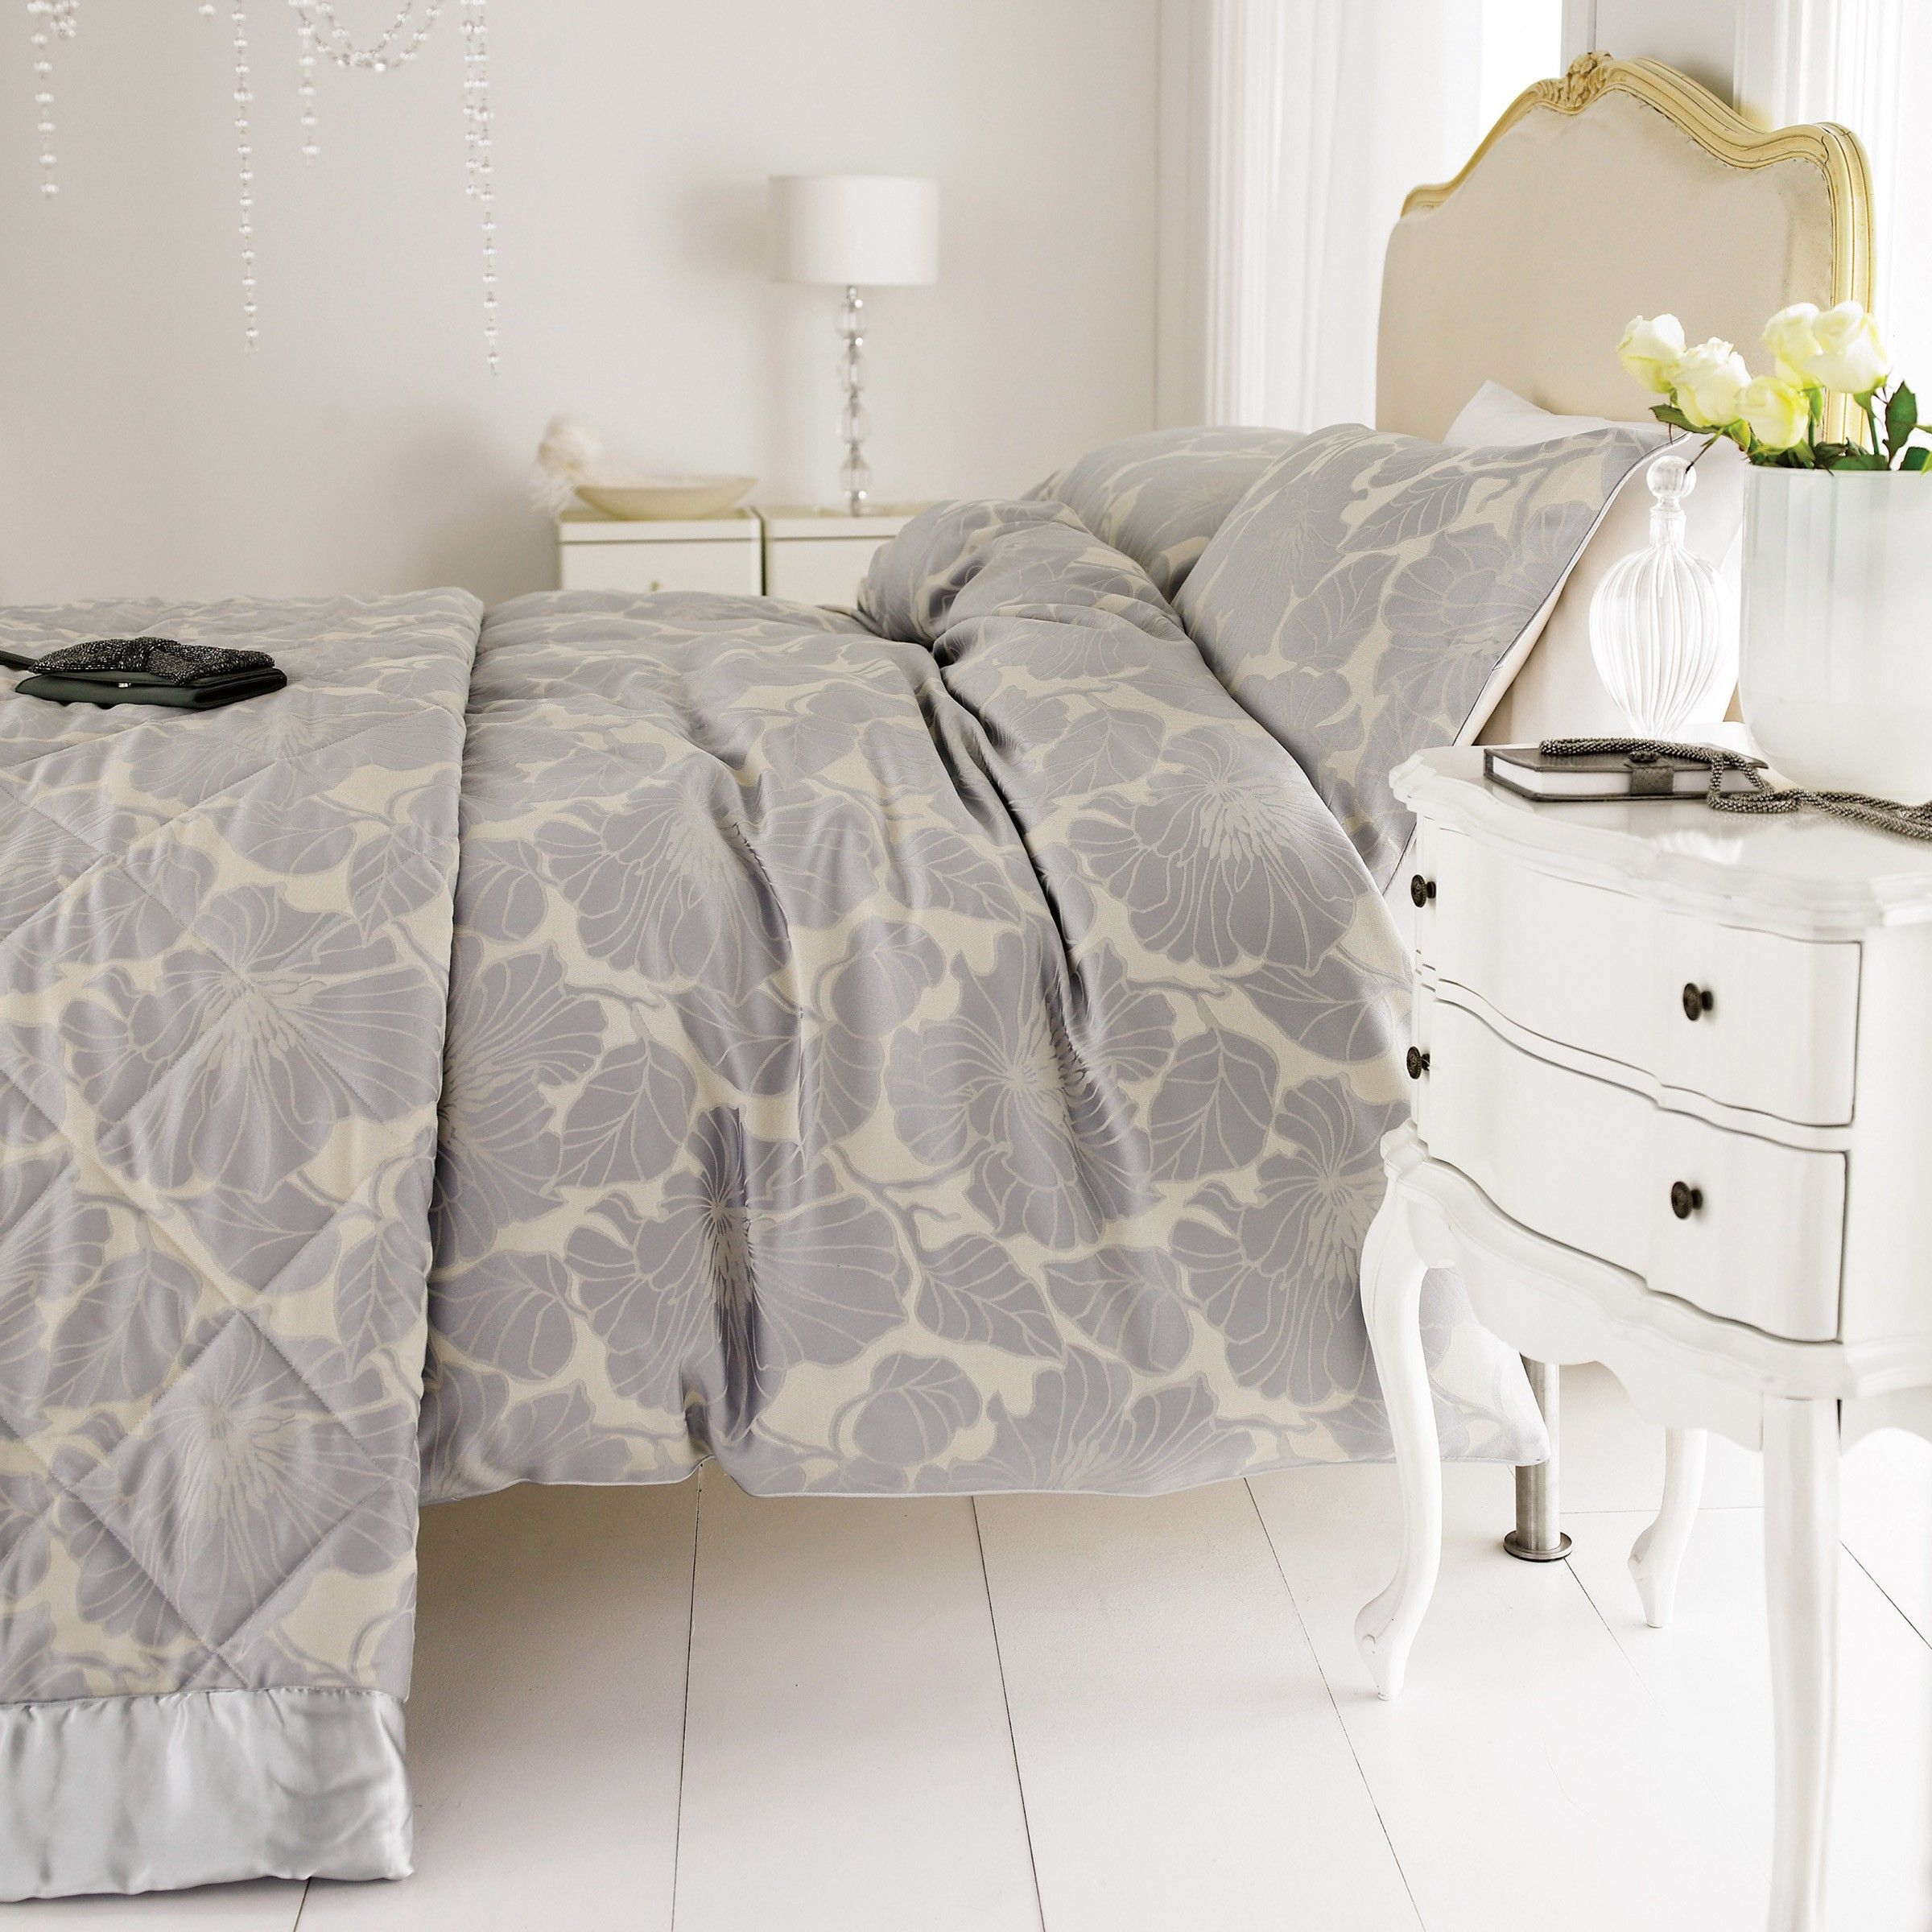 twin checkered blanket design bedroom comforter a queen set cute comforters black mens of gold full purple white sets and best bedding for grey bed beige silver size